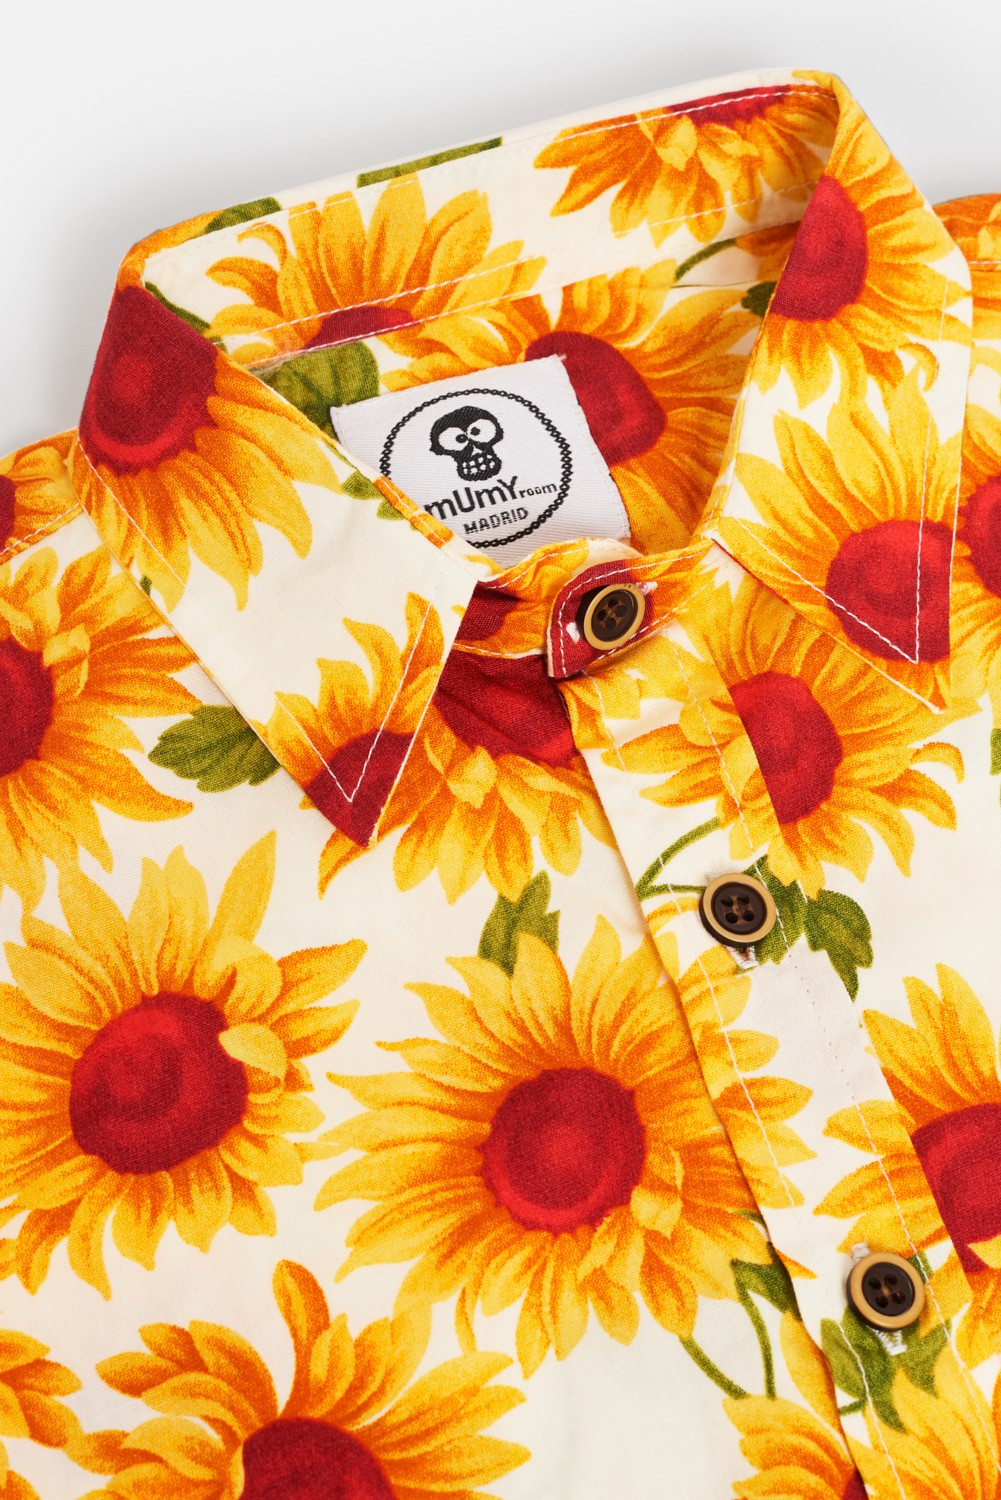 PRINTED KID'S SHIRT WITH SUNFLOWERS